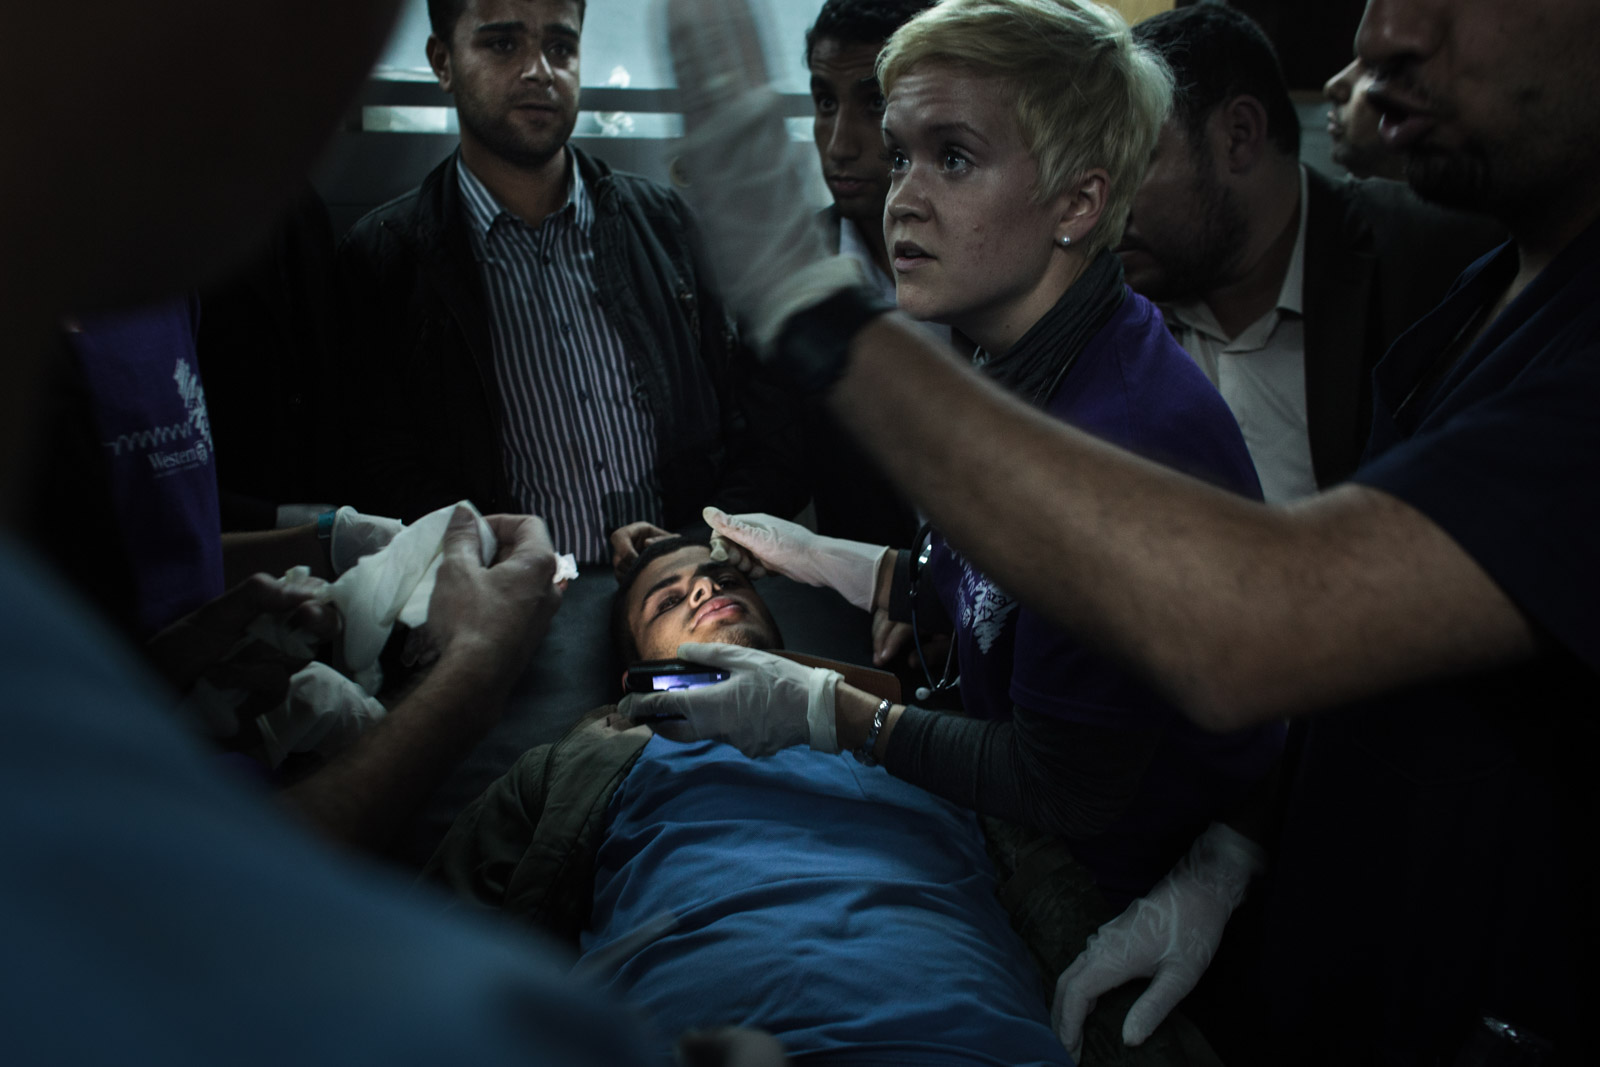 Gaza City, Gaza - November 10, 2012: International medical reservists give orders to medical personnel in the emergency unit of Shifa hospital in Gaza, after examining the pupils of the injured with the aid of a cell phone light.